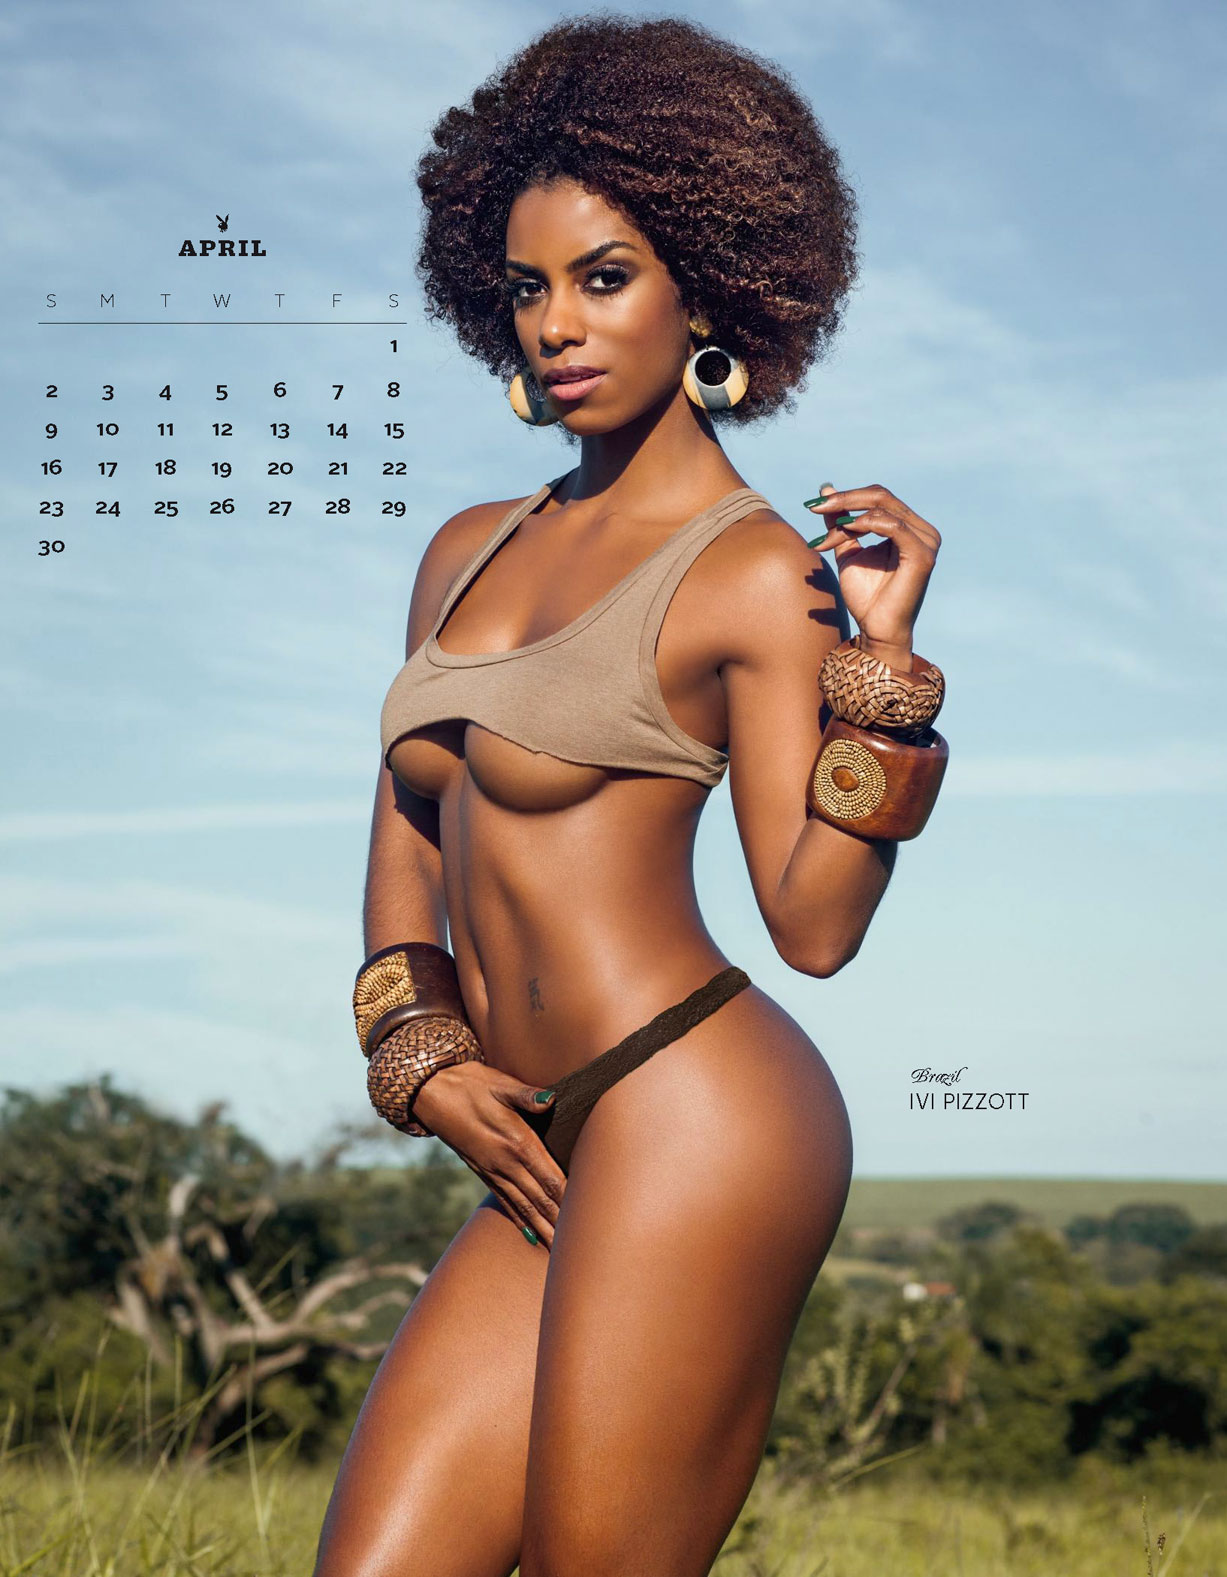 Playboy USA 2017 Official Calendar - Playmates Around the World - Ivi Pizzott | Brasil